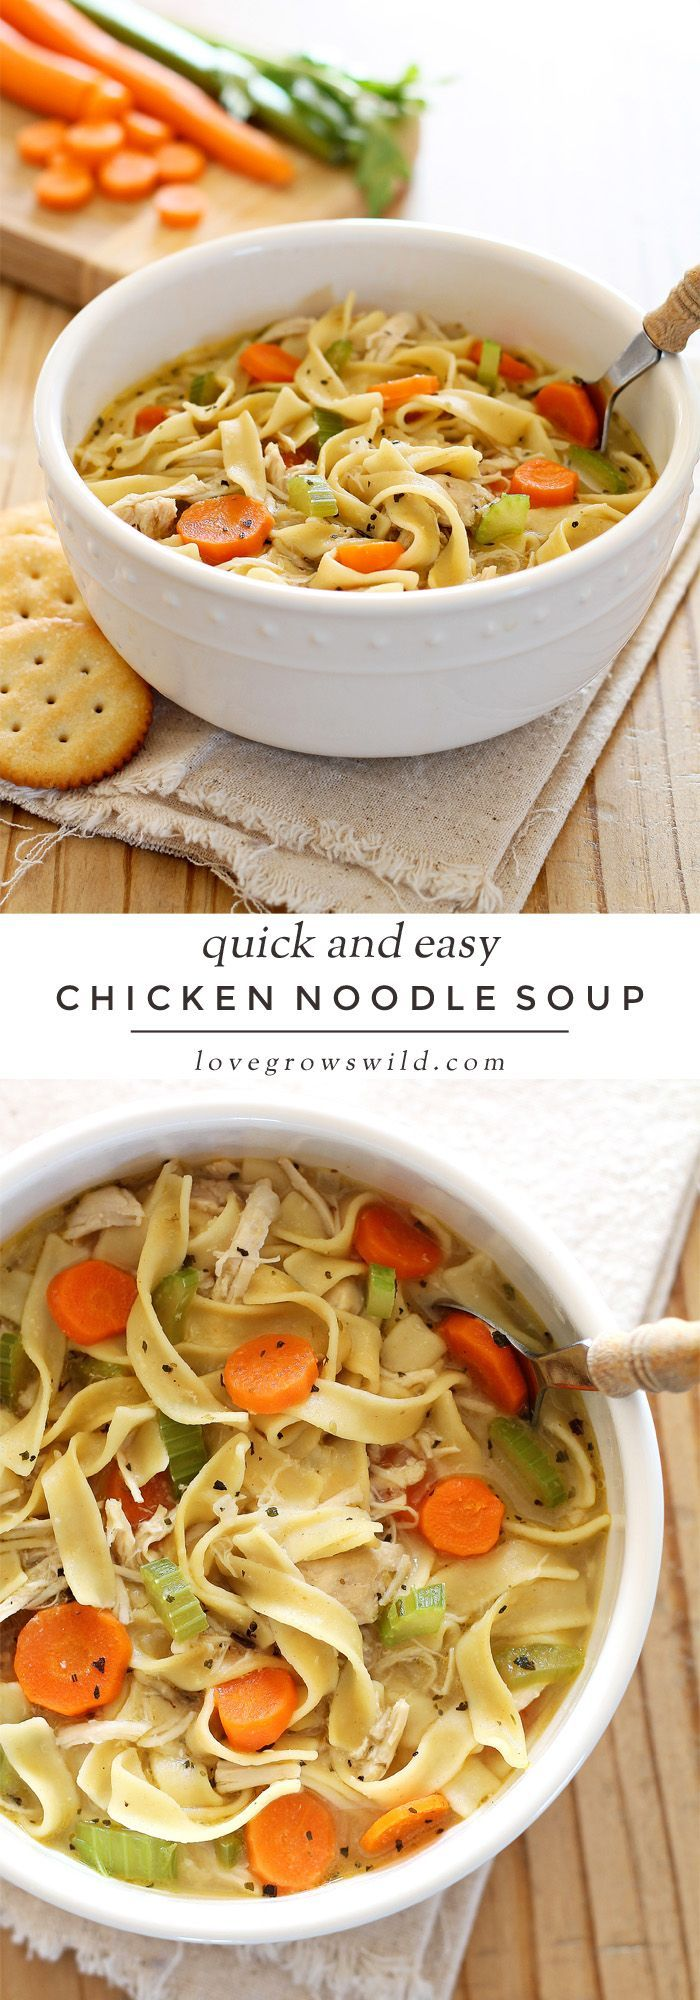 Delicious homemade Chicken Noodle Soup ready in under 30 minutes! Get the recipe for this easy meal at LoveGrowsWild.com (Gluten Free Recipes For Crockpot)